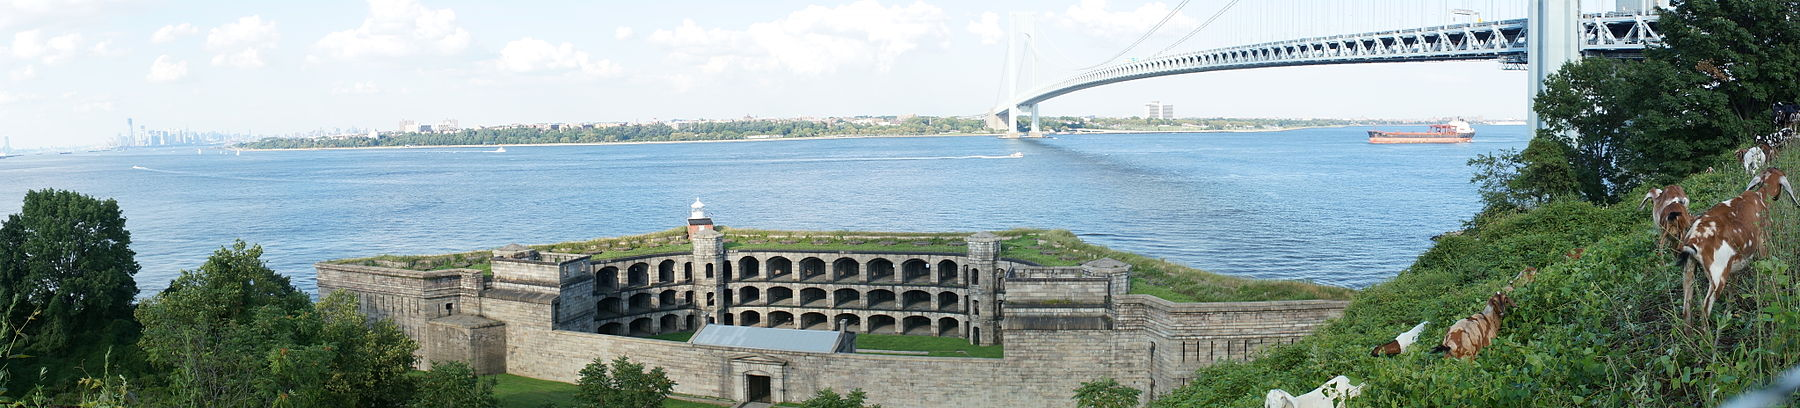 Panorama of the bay with Fort Wadsworth (foreground) on the Narrows, under the Verrazano-Narrows Bridge.